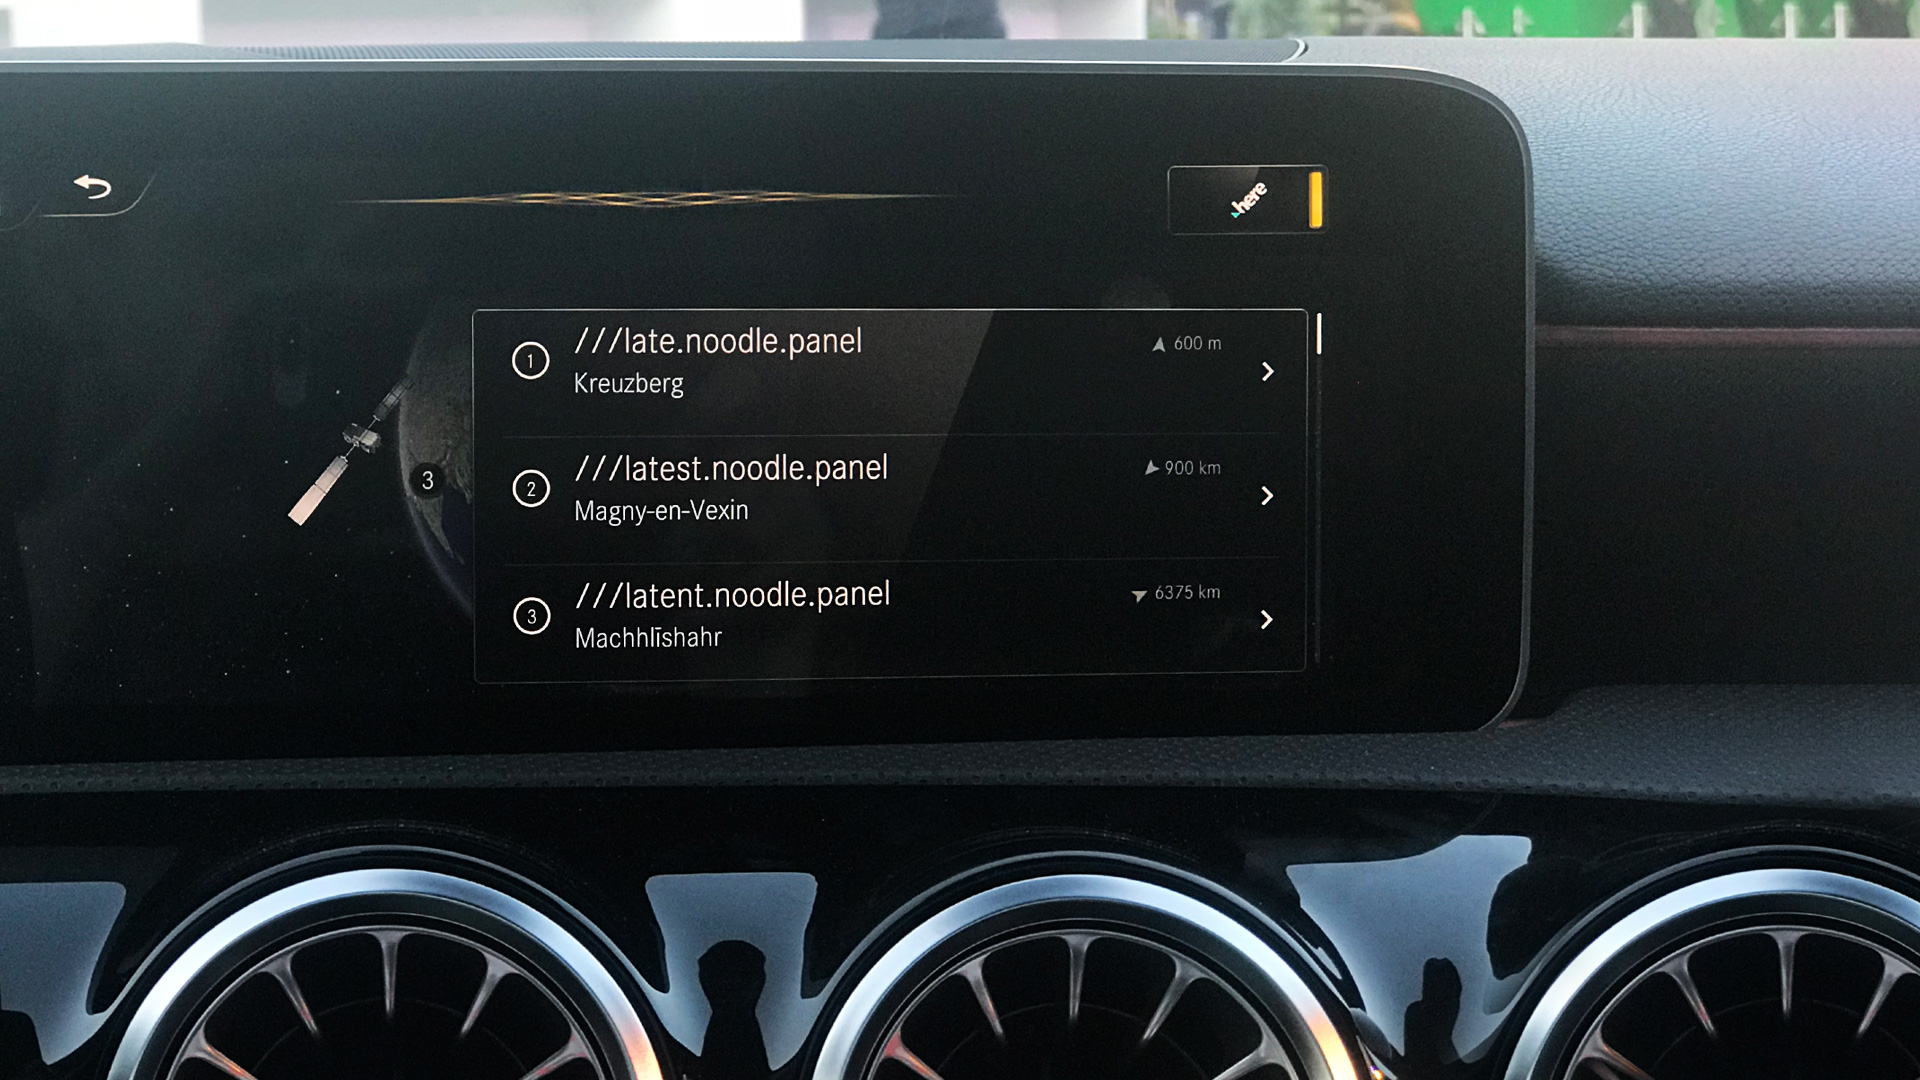 Mercedes navigation system using a what 3 words address